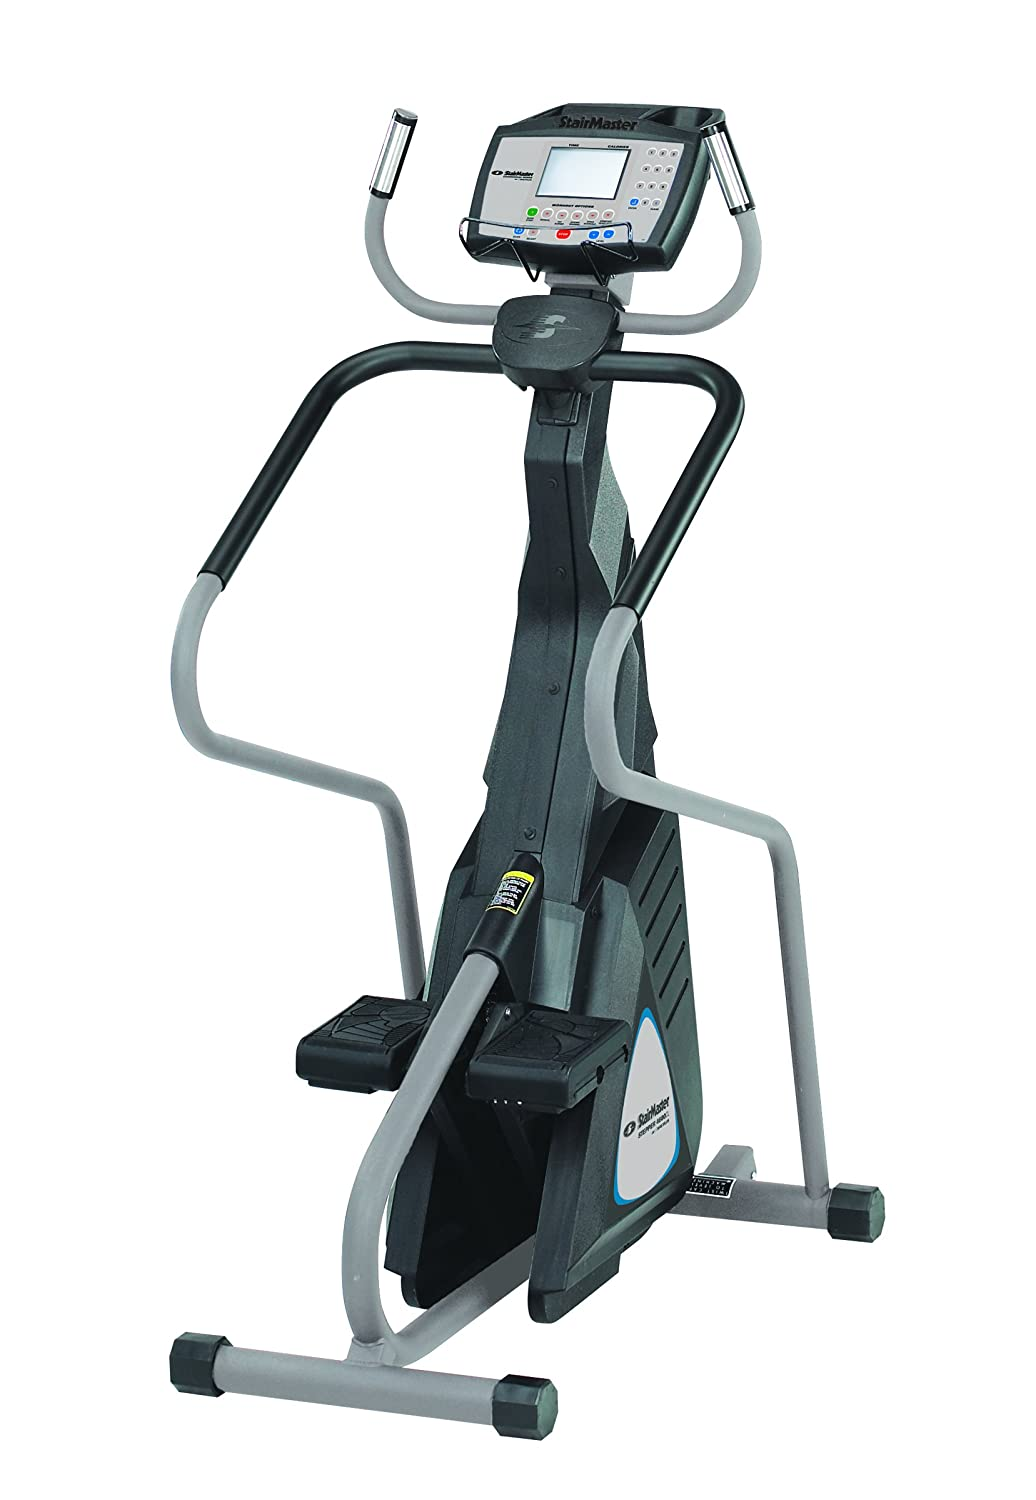 StairMaster 4600PT Stepper